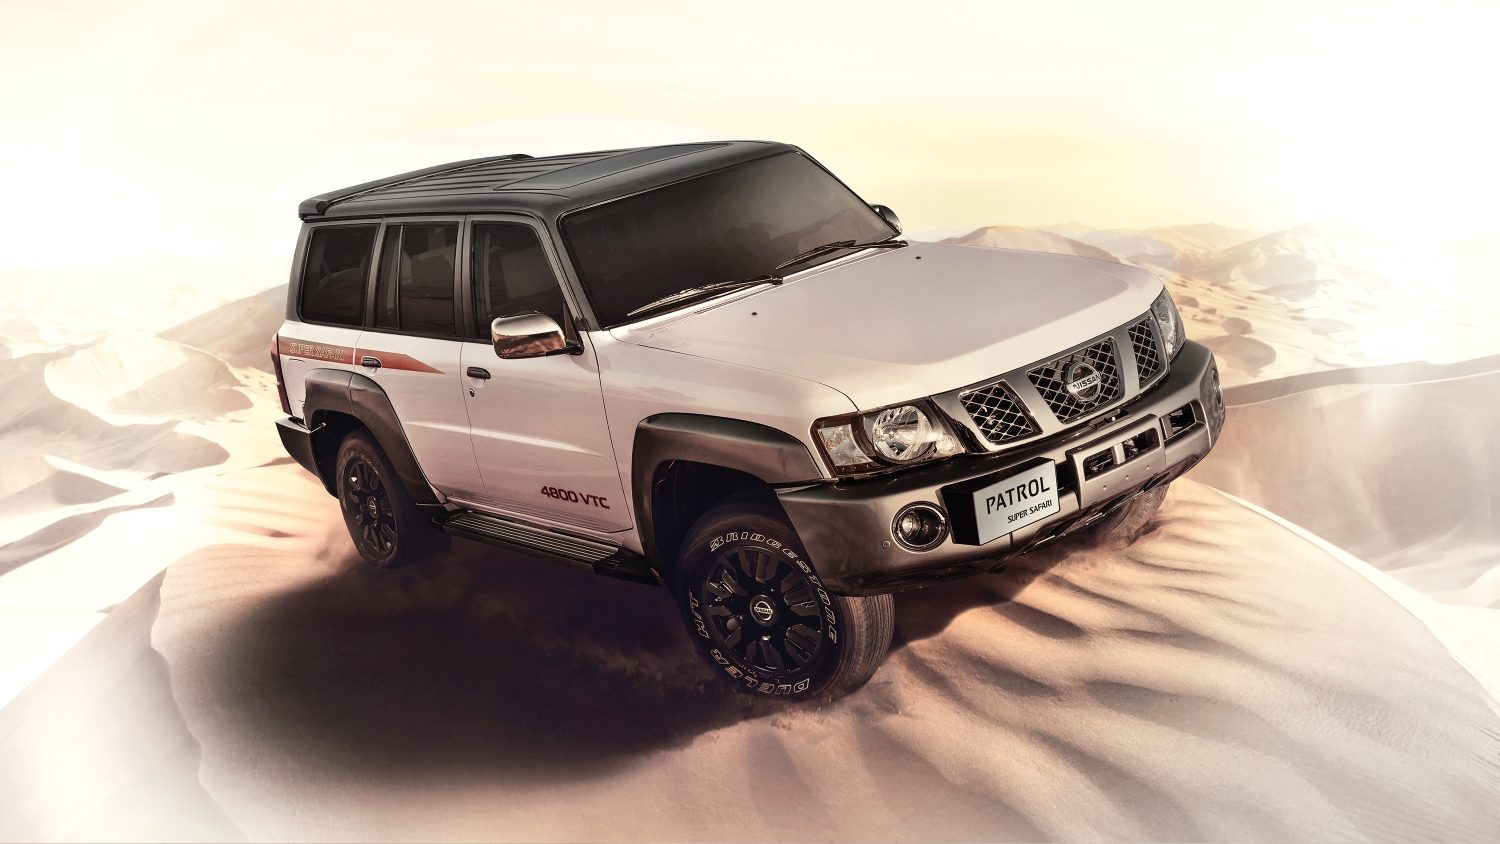 Nissan Patrol Super Safari Off Road 4x4 Special Edition Suv Xtrail Offroad Modified The World Class Adventurer